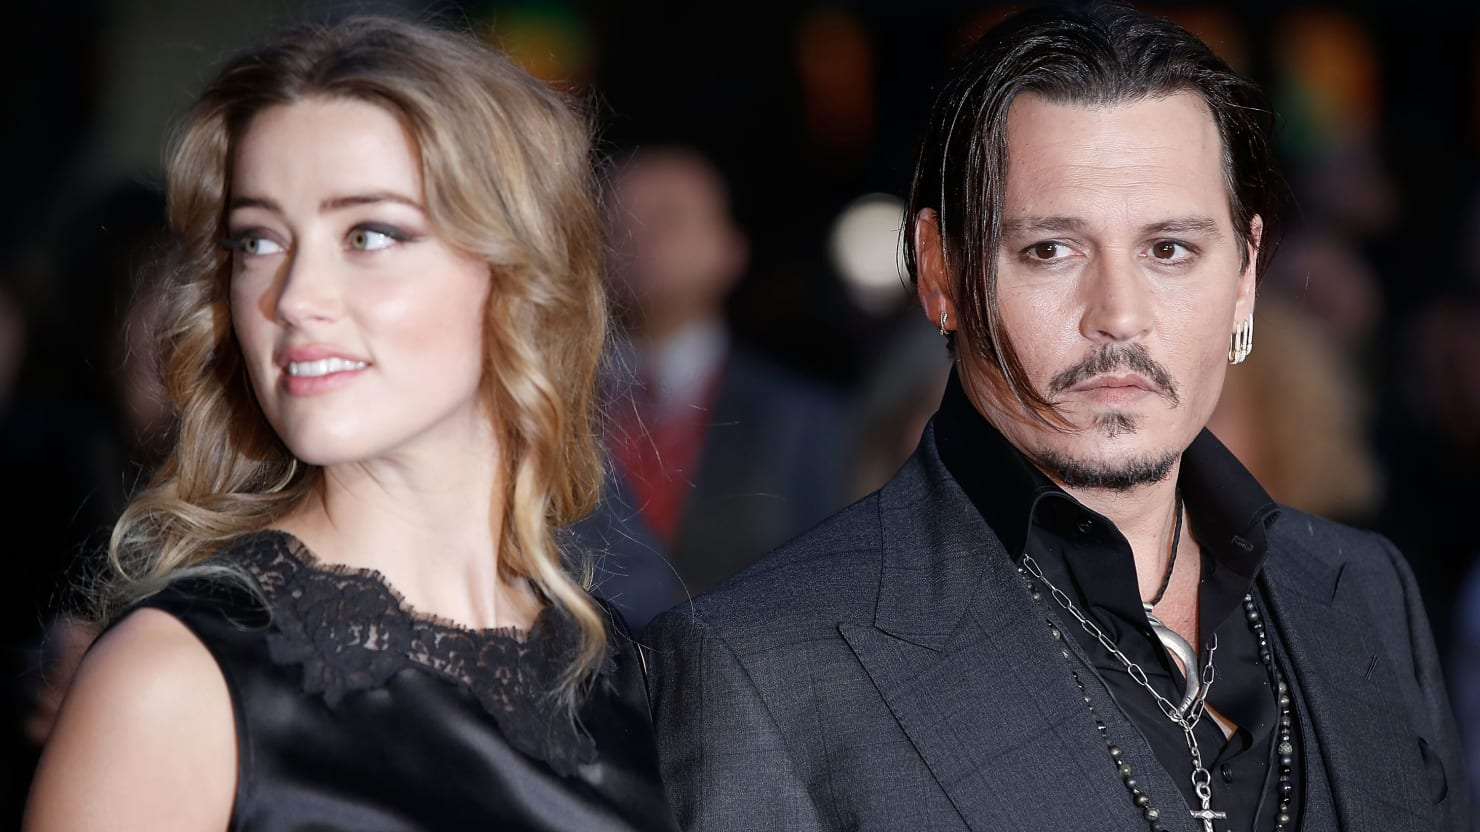 Inside the Horrifying Johnny Depp-Amber Heard Court Case, from Cocaine Tantrums to 'Creepy' James Franco